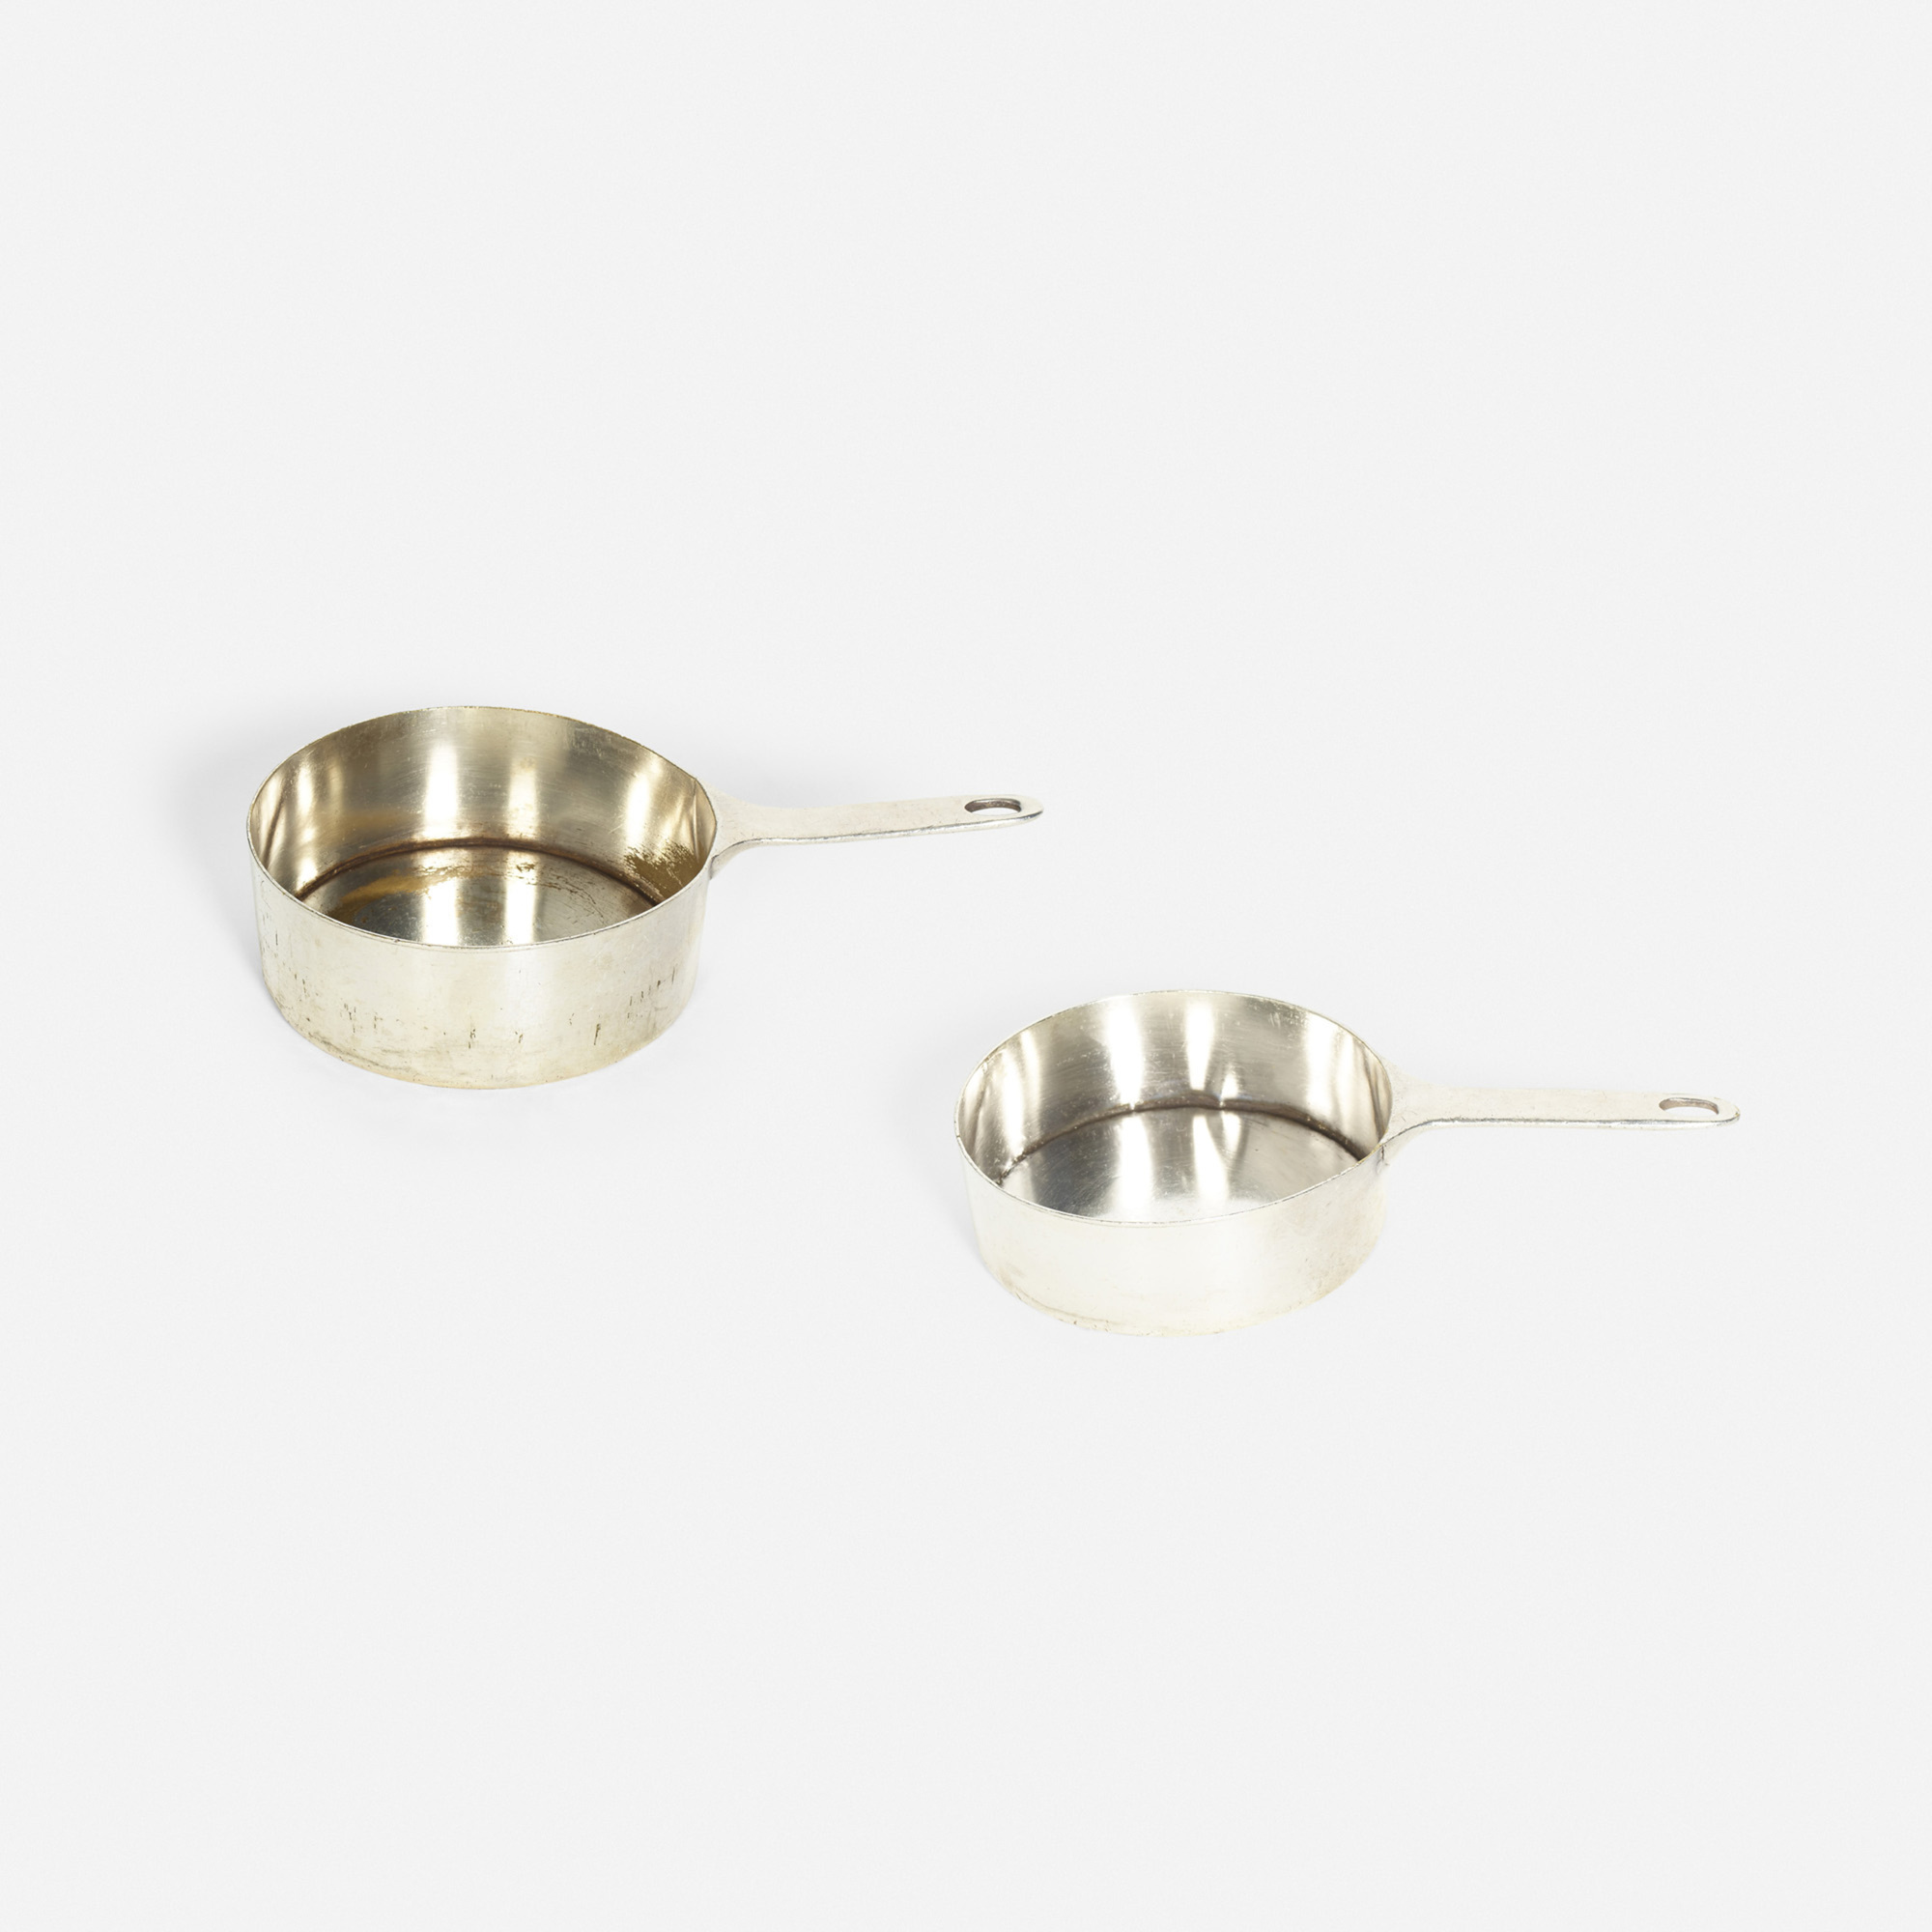 865: Garth and Ada Louise Huxtable / sauce pots from the kitchen of The Four Seasons, set of two (1 of 1)